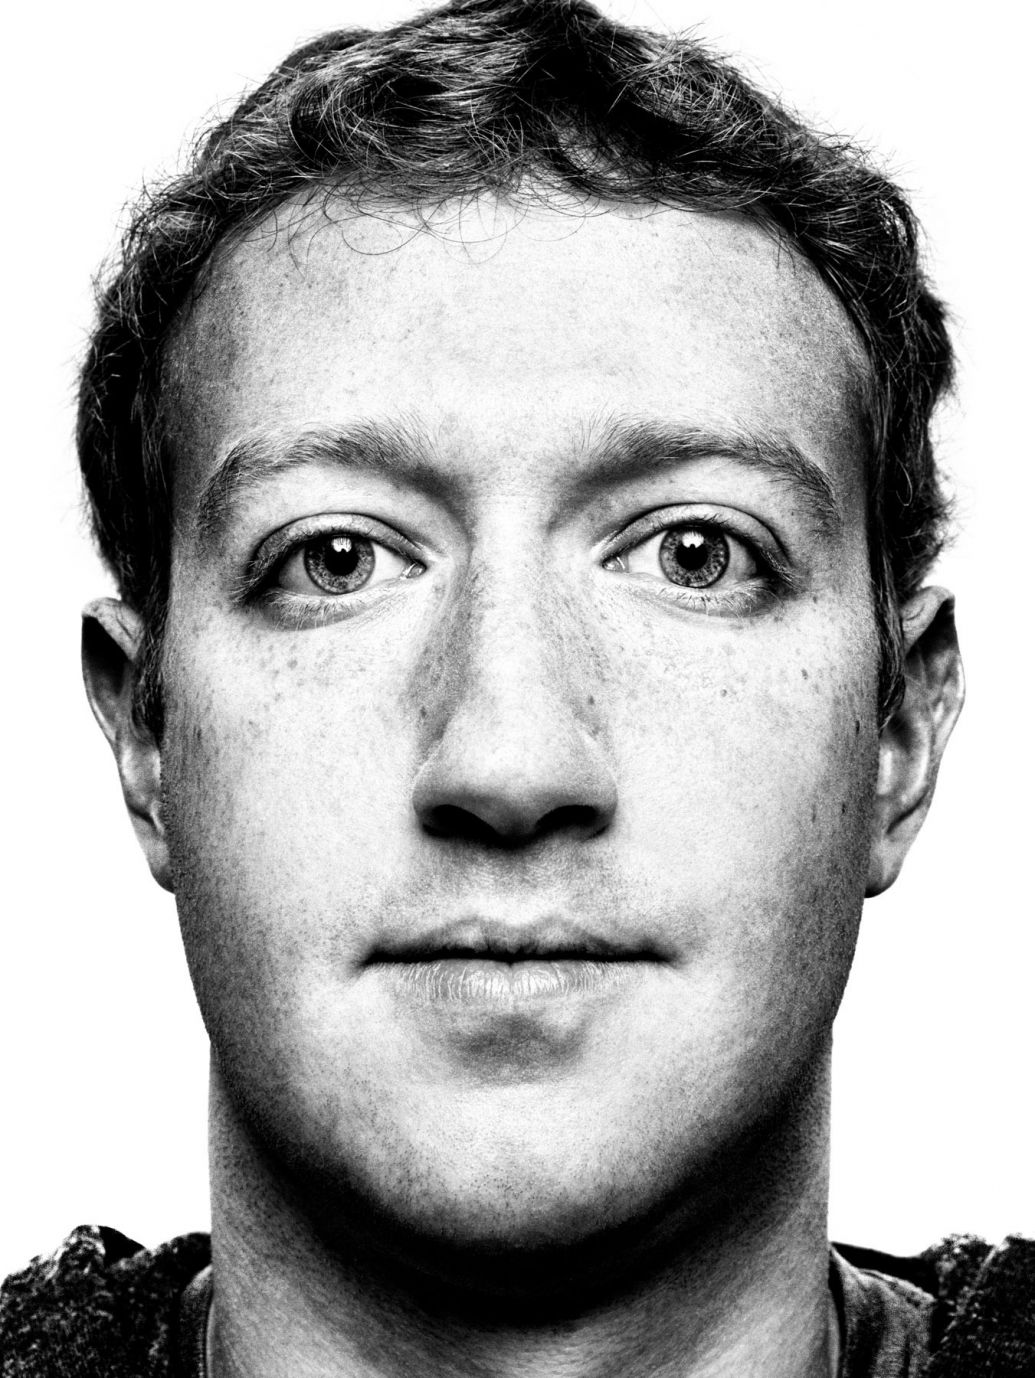 mark zuckerberg portrait photography